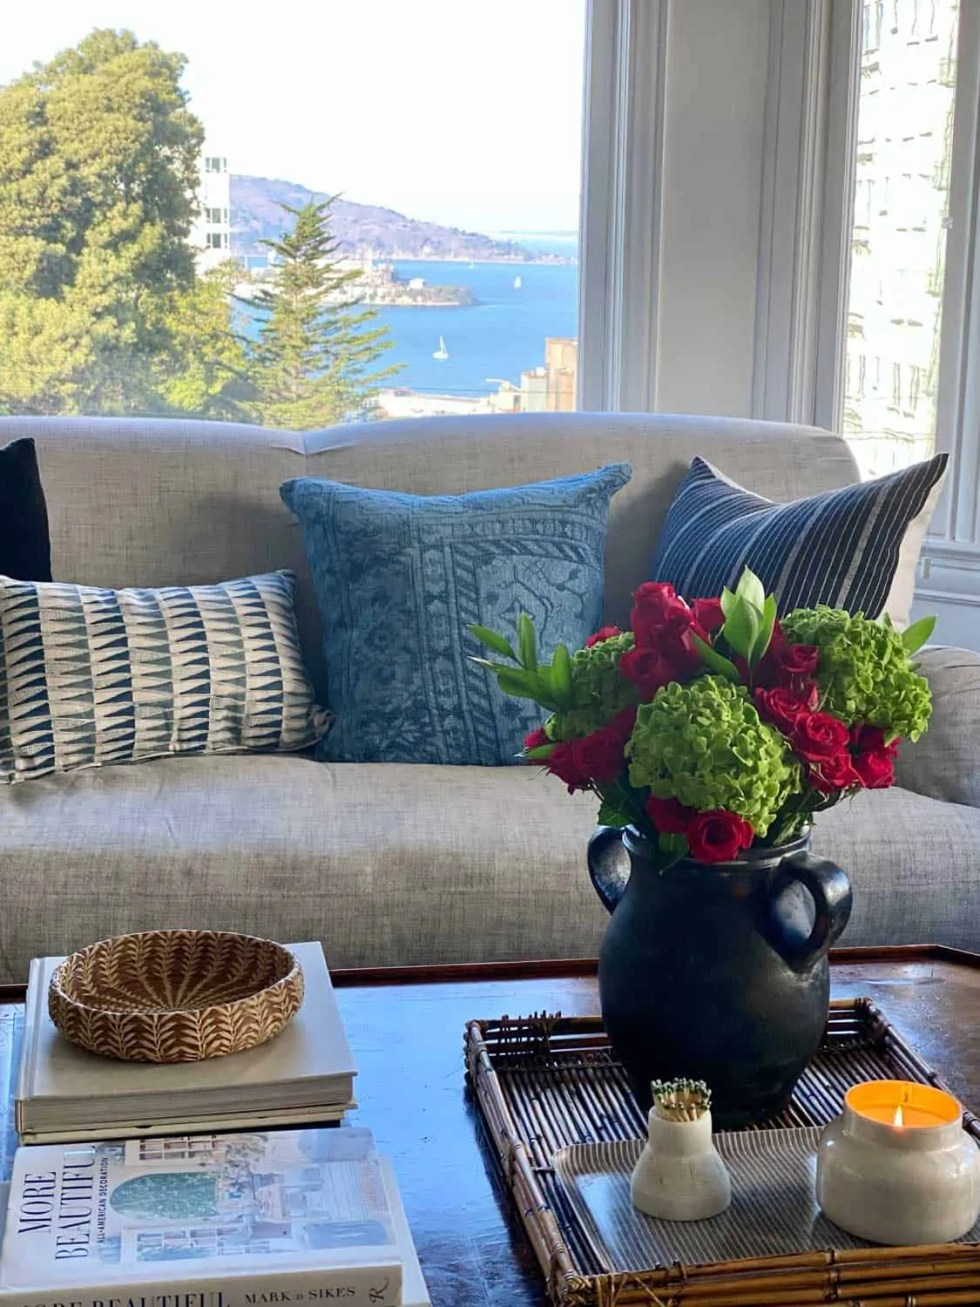 Blue and Black Throw pillows with a view of Alcatraz Island